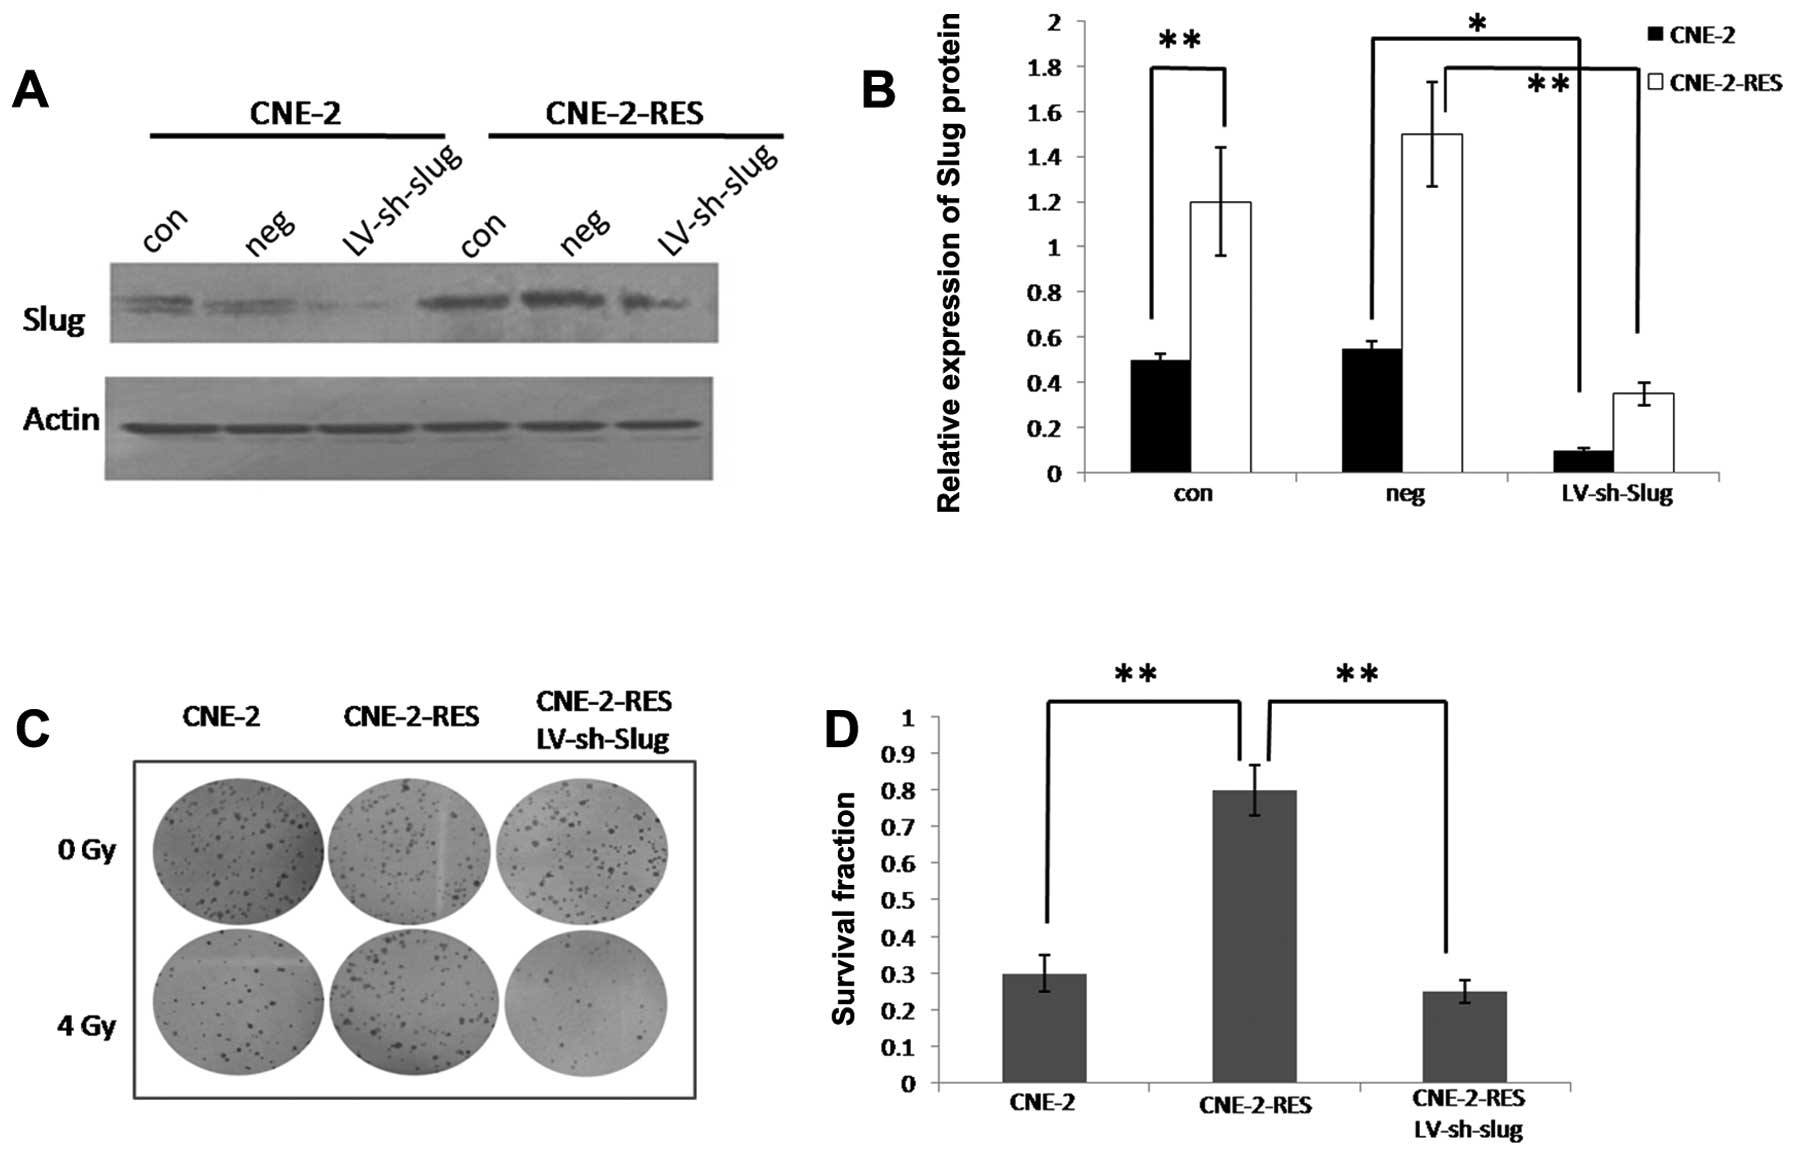 Slug mediates nasopharyngeal carcinoma radioresistance via after infection slug expression was significantly inhibited the radioresistant cne 2 res cells showed significantly increased slug expression when pooptronica